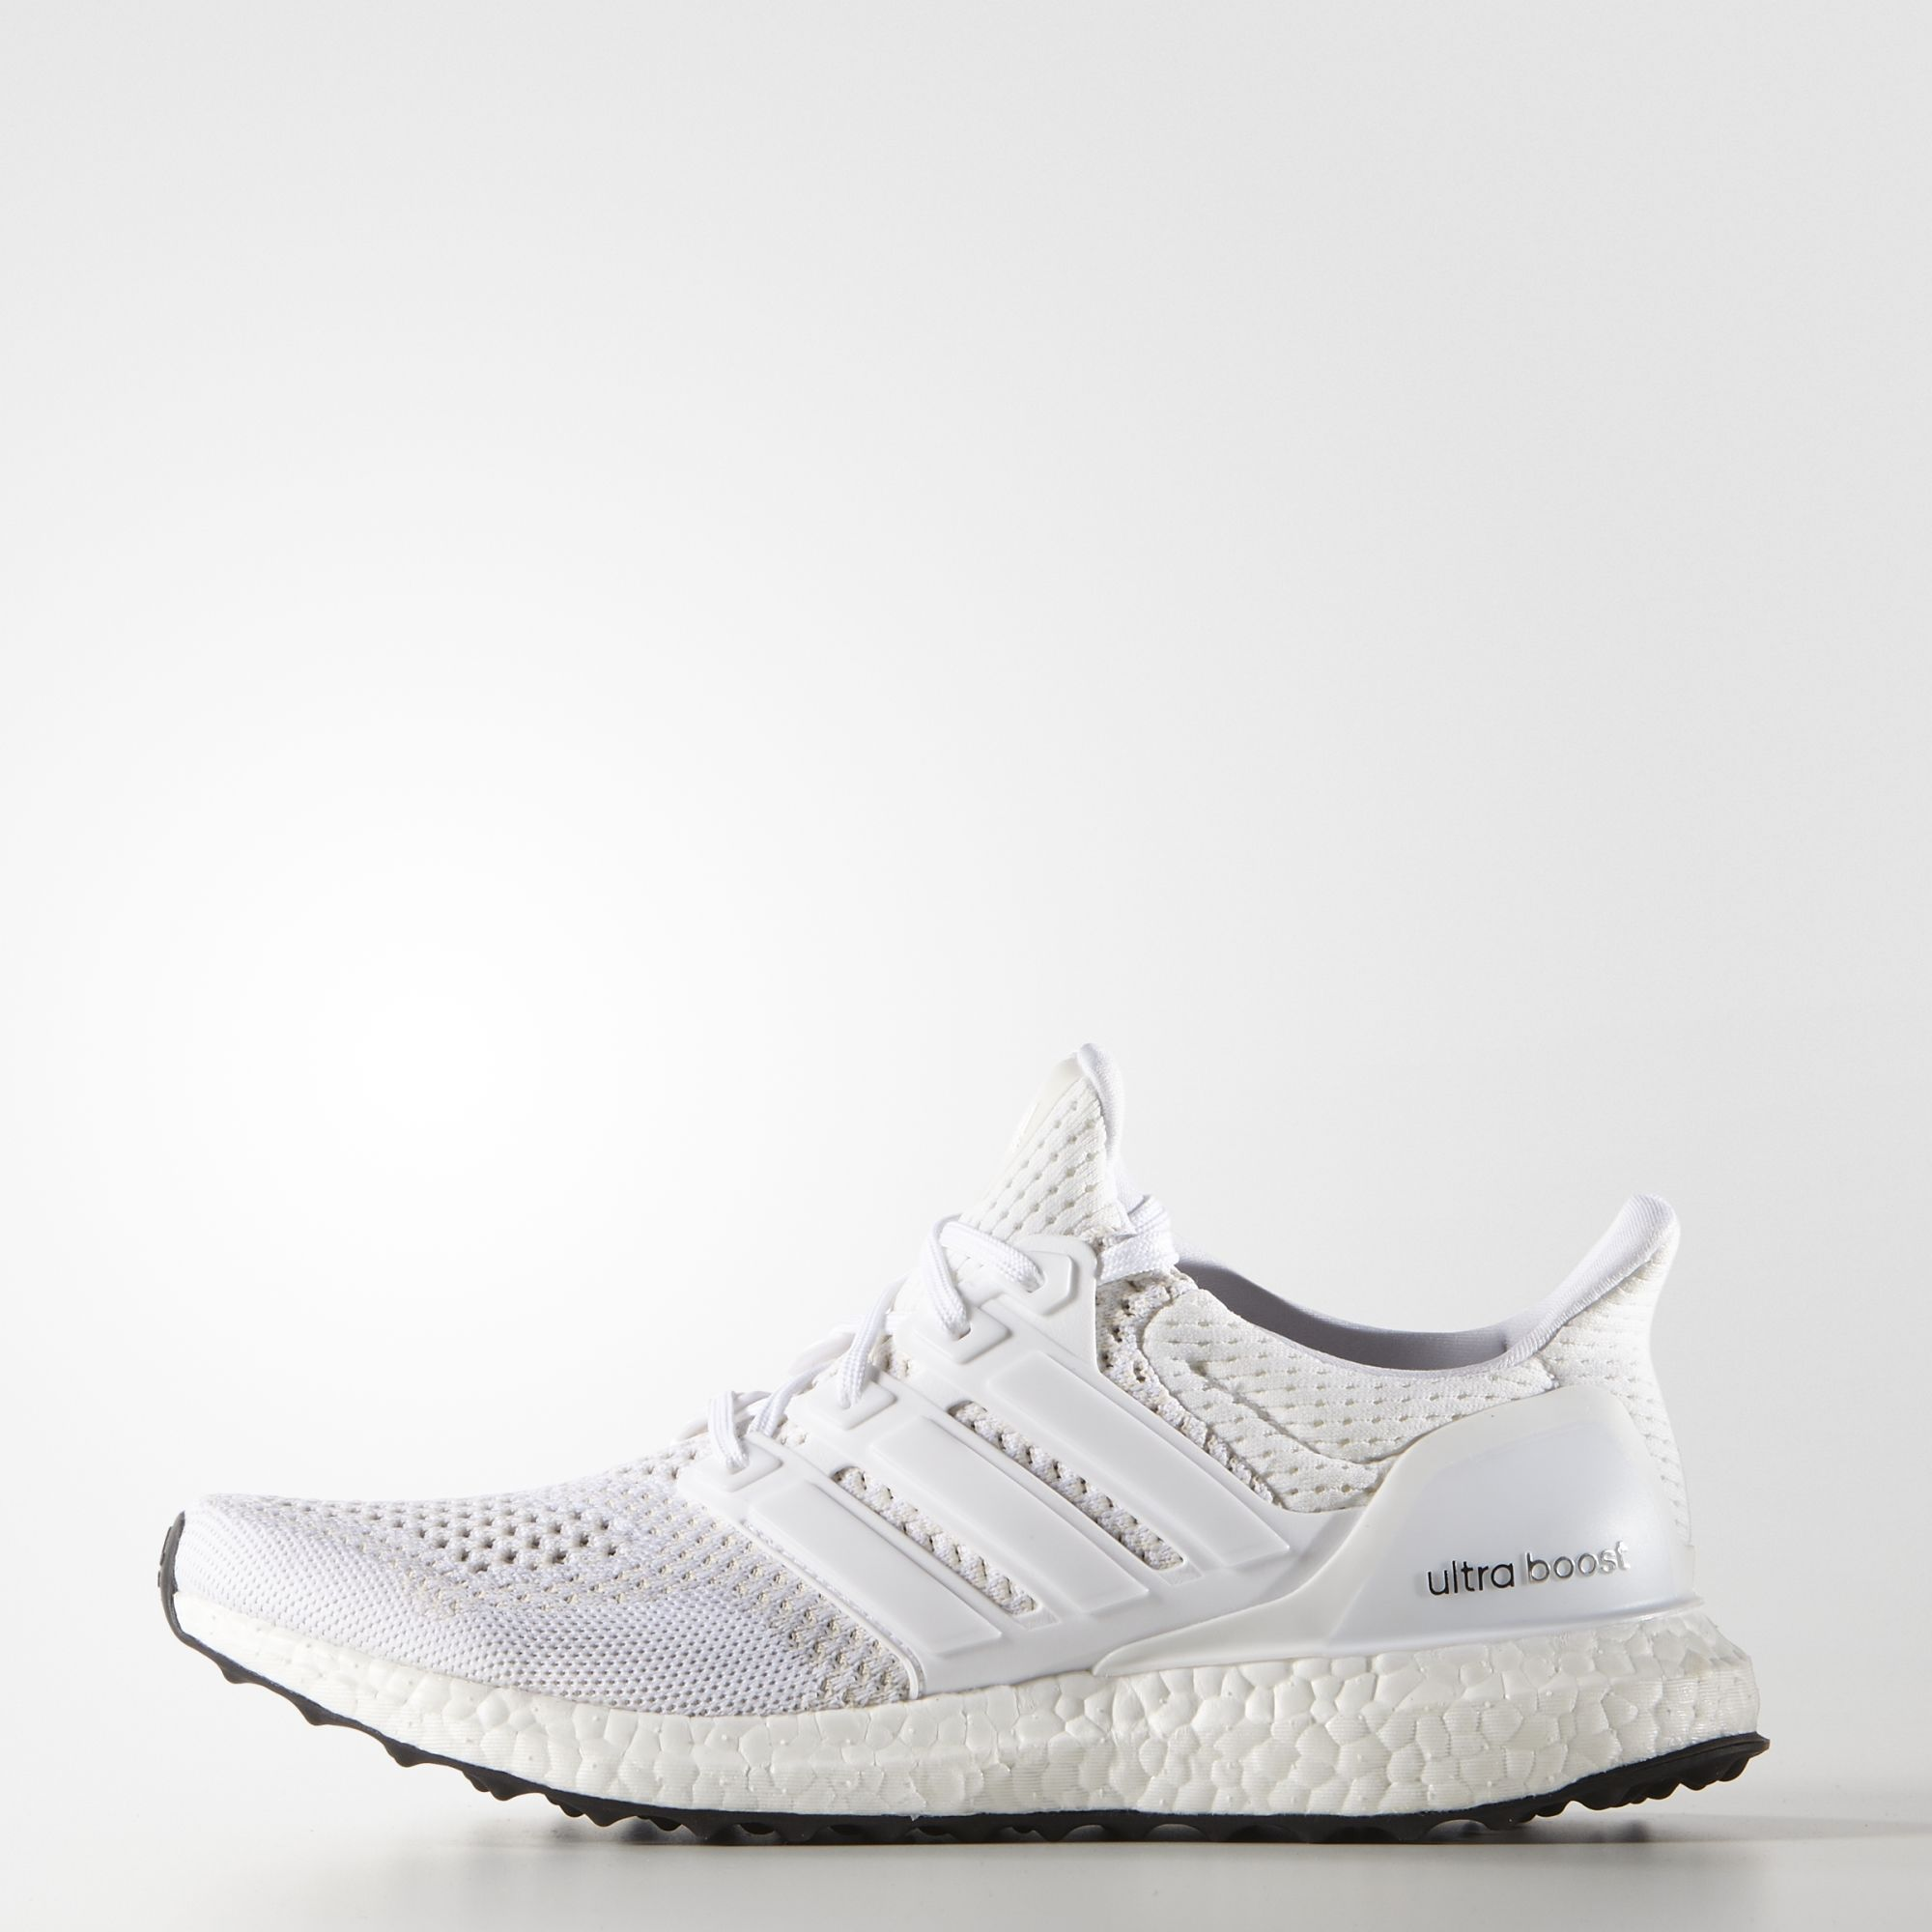 cadb5a97df2 adidas - Ultra Boost Shoes